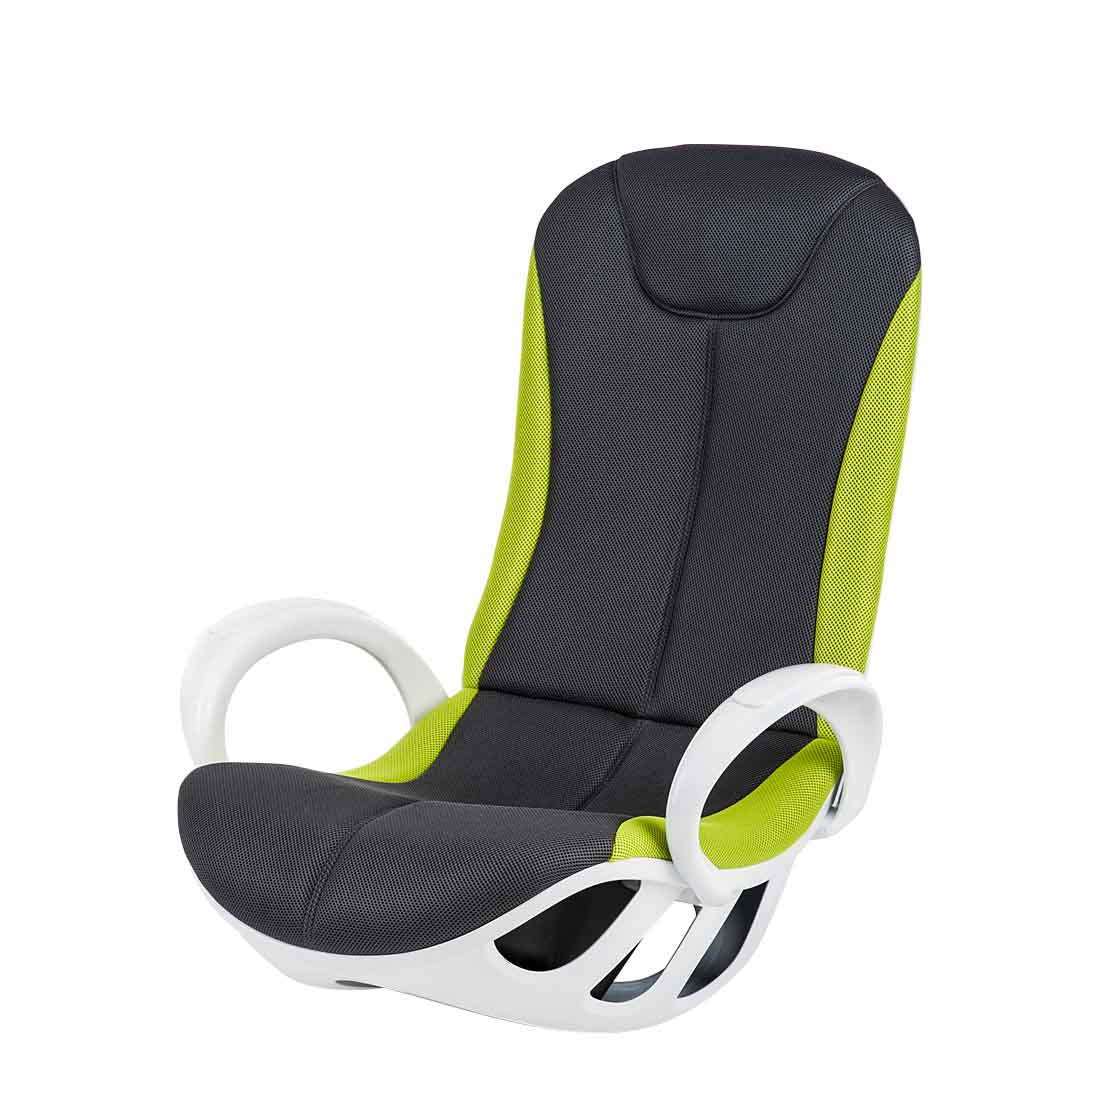 multimediasessel grau gr n gaming chair relax soundsessel multimedia sessel neu ebay. Black Bedroom Furniture Sets. Home Design Ideas